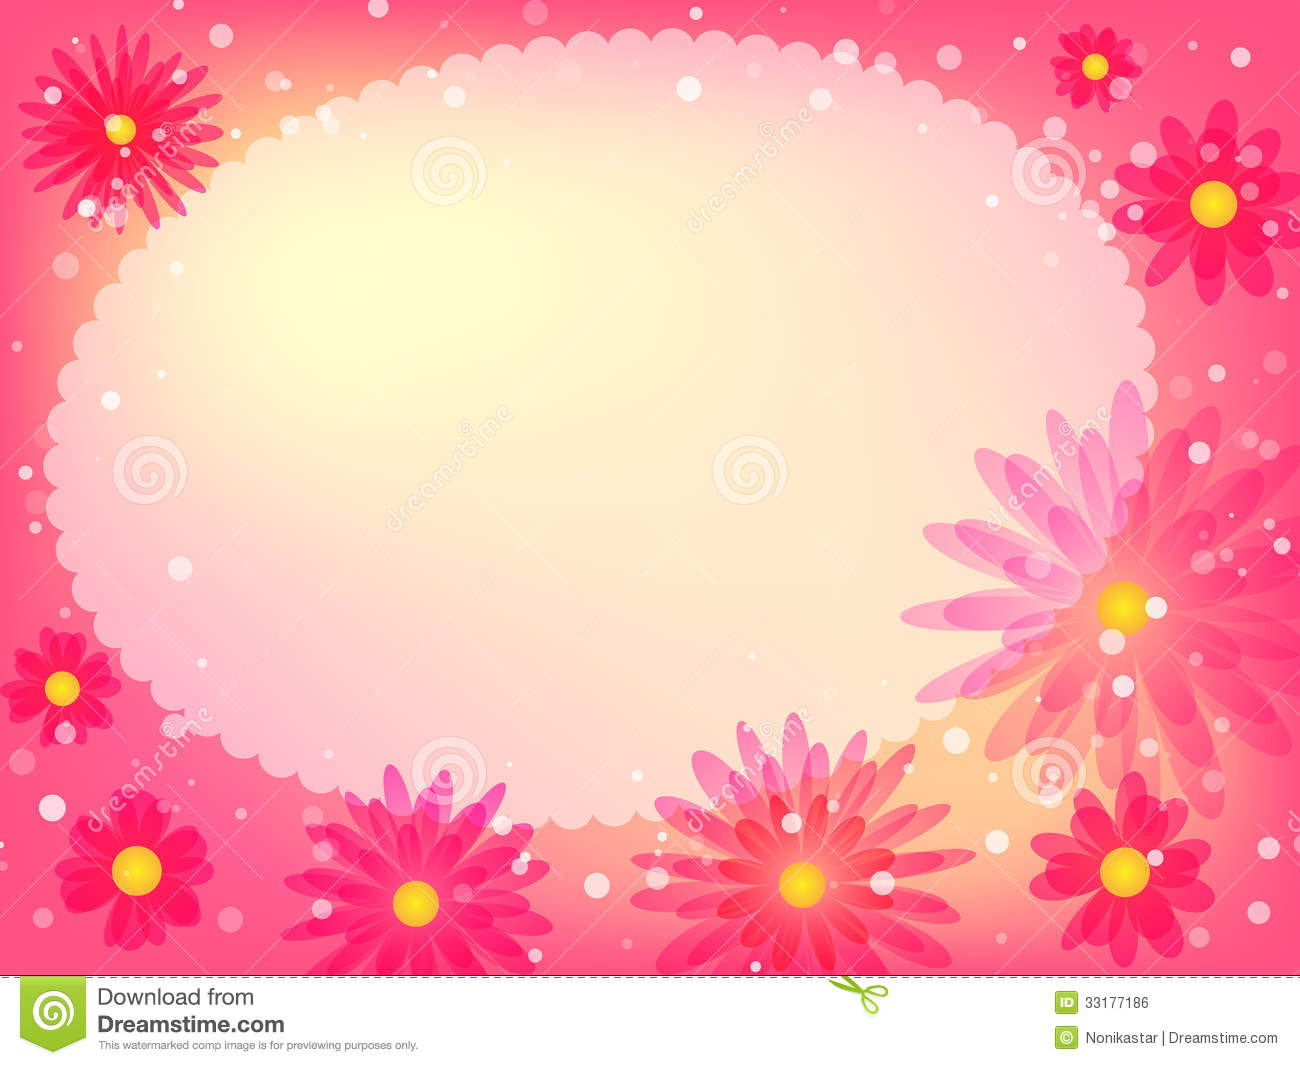 Beautiful flower background stock vector illustration of eps10 beautiful flower background izmirmasajfo